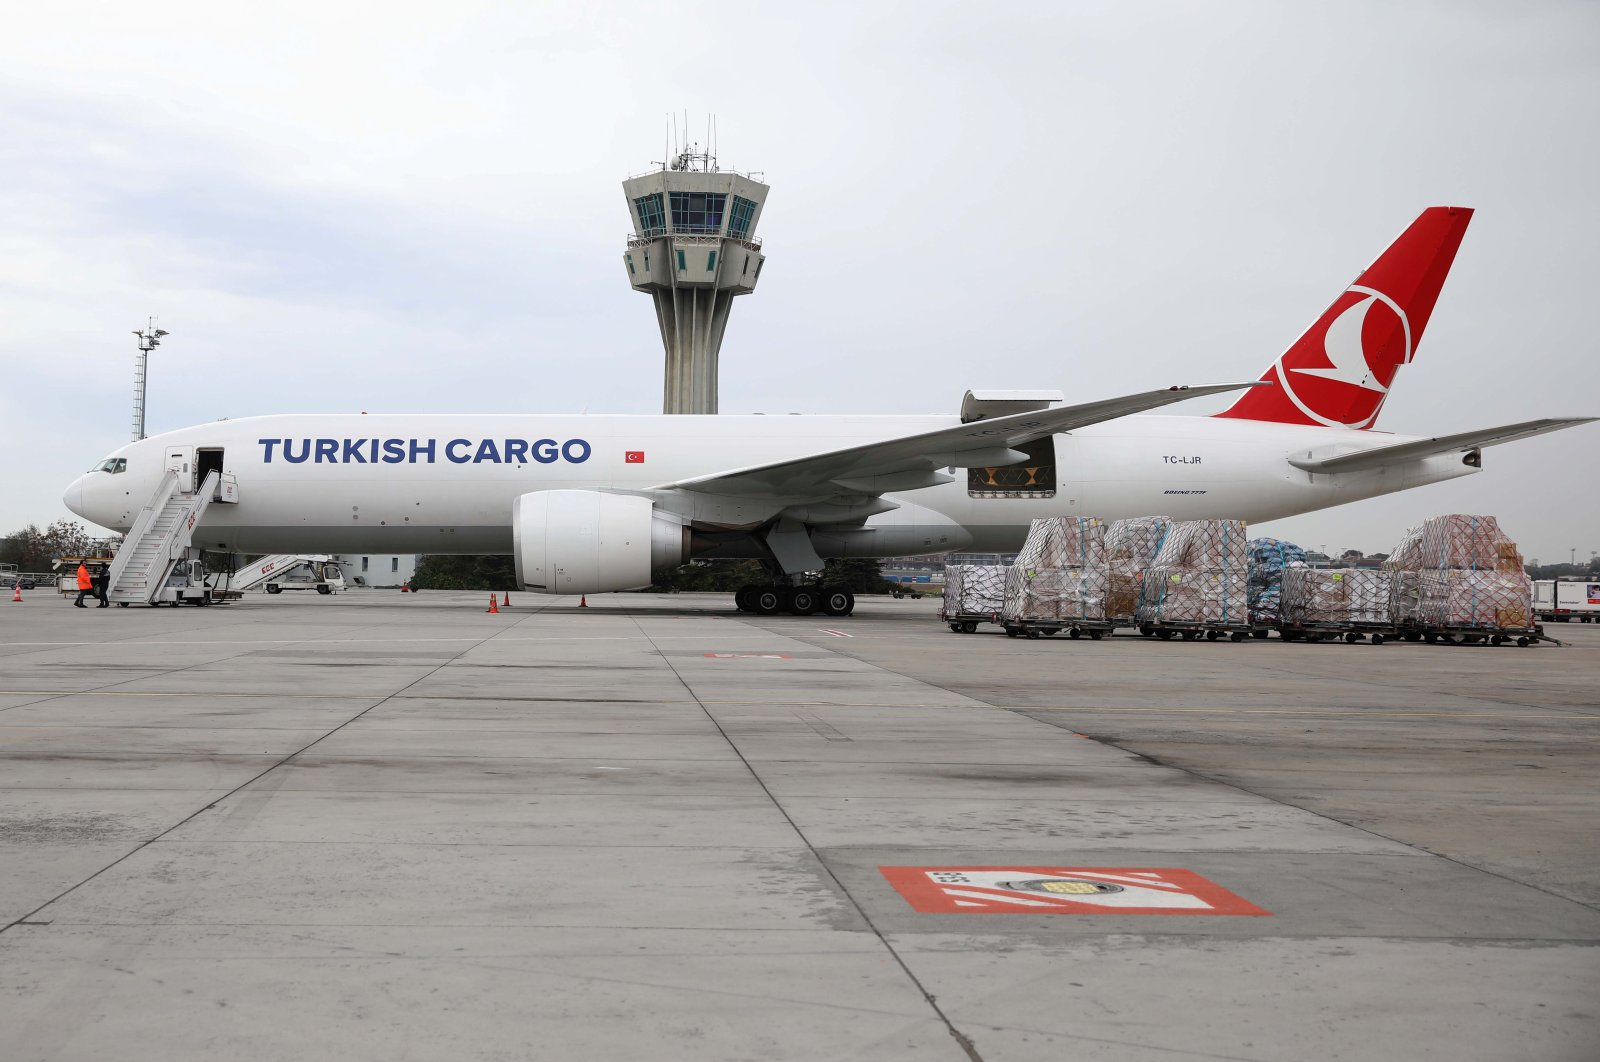 A Turkish Cargo plane is seen on the tarmac of Atatürk Airport, in Istanbul, Turkey, Nov. 18, 2020. (Reuters Photo)